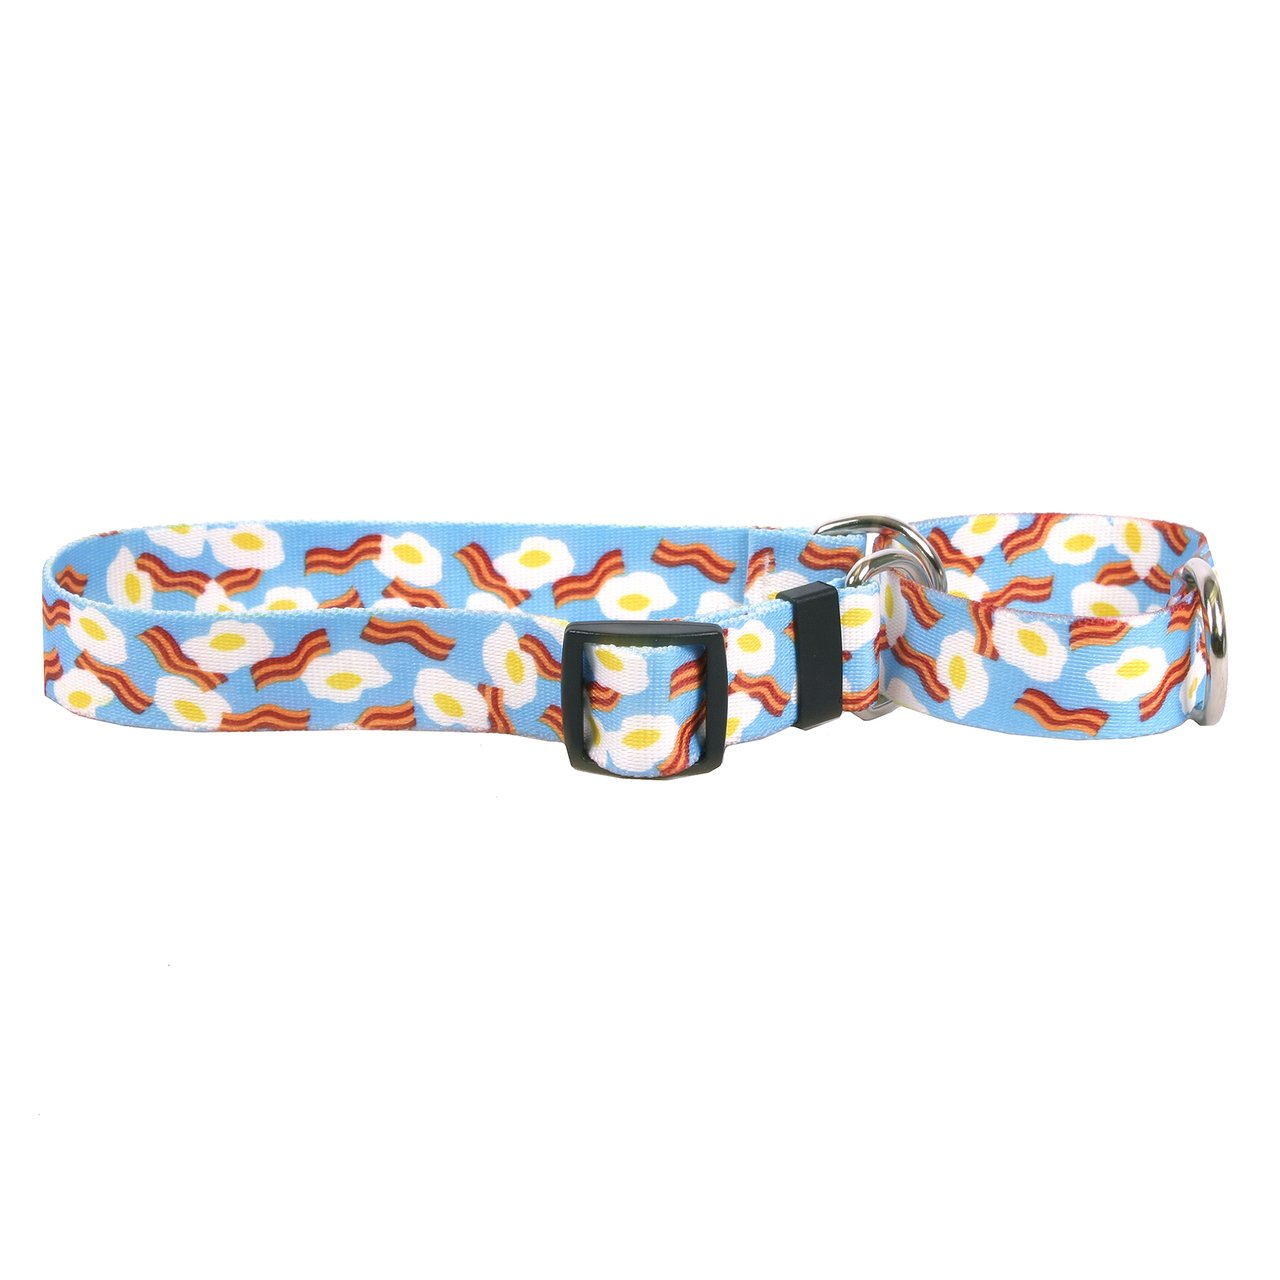 Large 26\ Yellow Dog Design Bacon And Eggs Martingale Dog Collar 1  Wide And Fits Neck 18 To 26 , Large